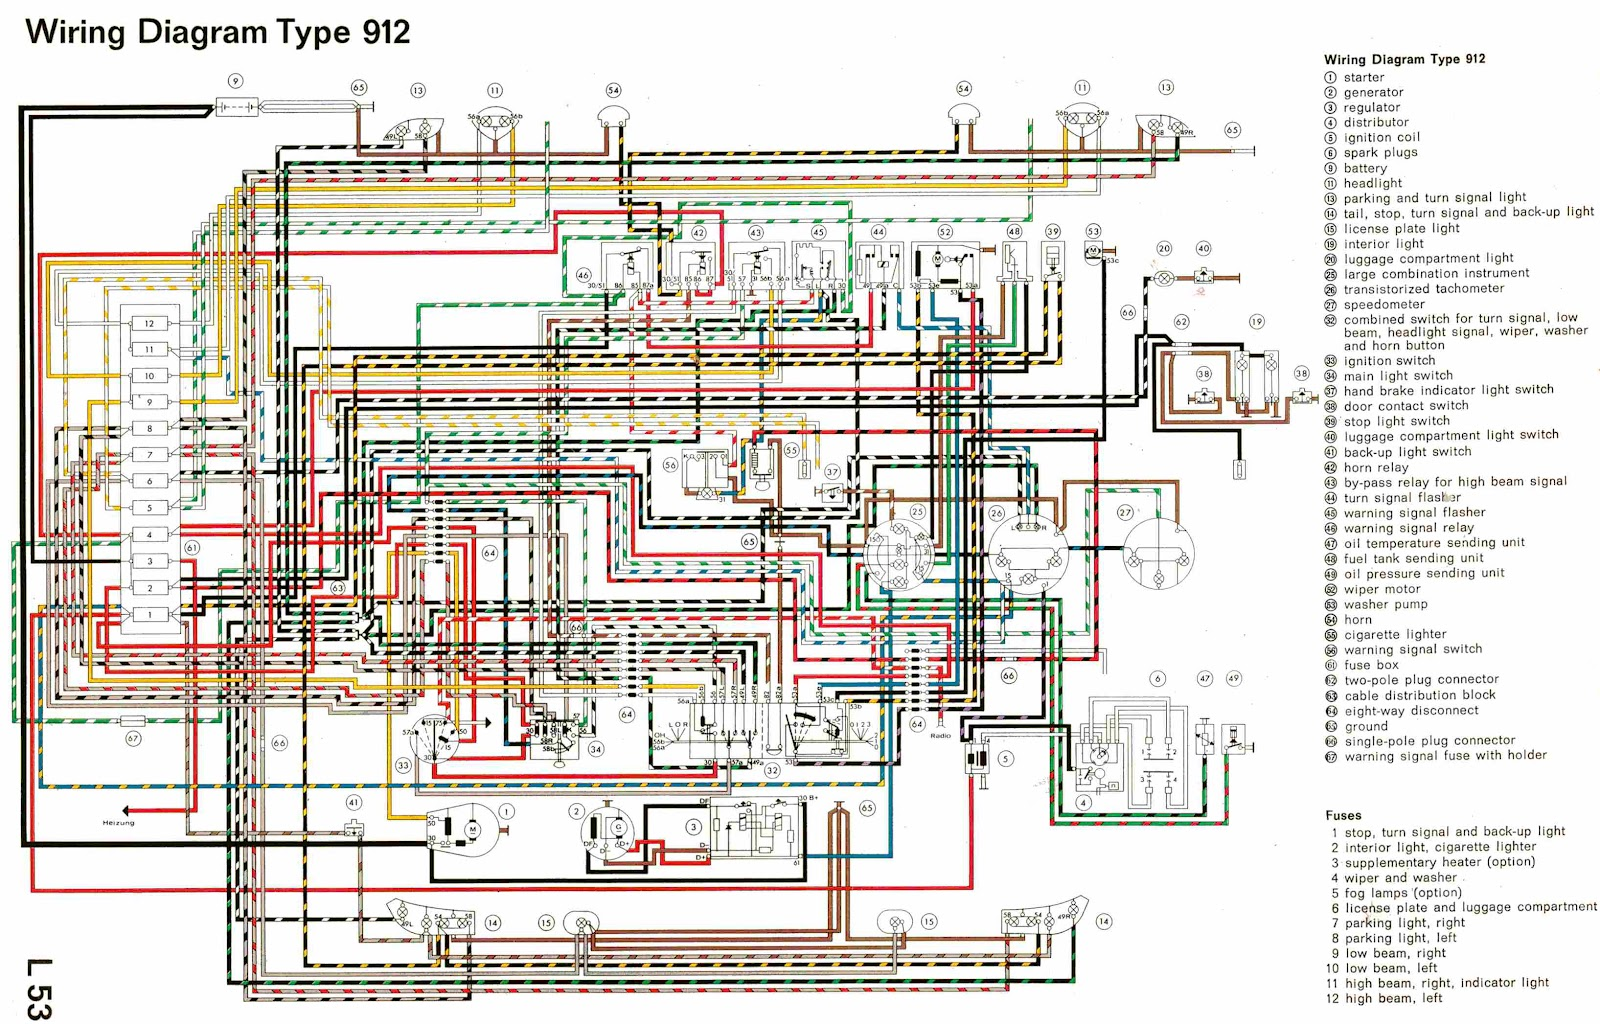 Diagrams633455 jaguar s type wiring diagram stype electrical 2008 jaguar s type parking brake switch wiring diagram nilzanet jaguar s type wiring diagram sciox Image collections